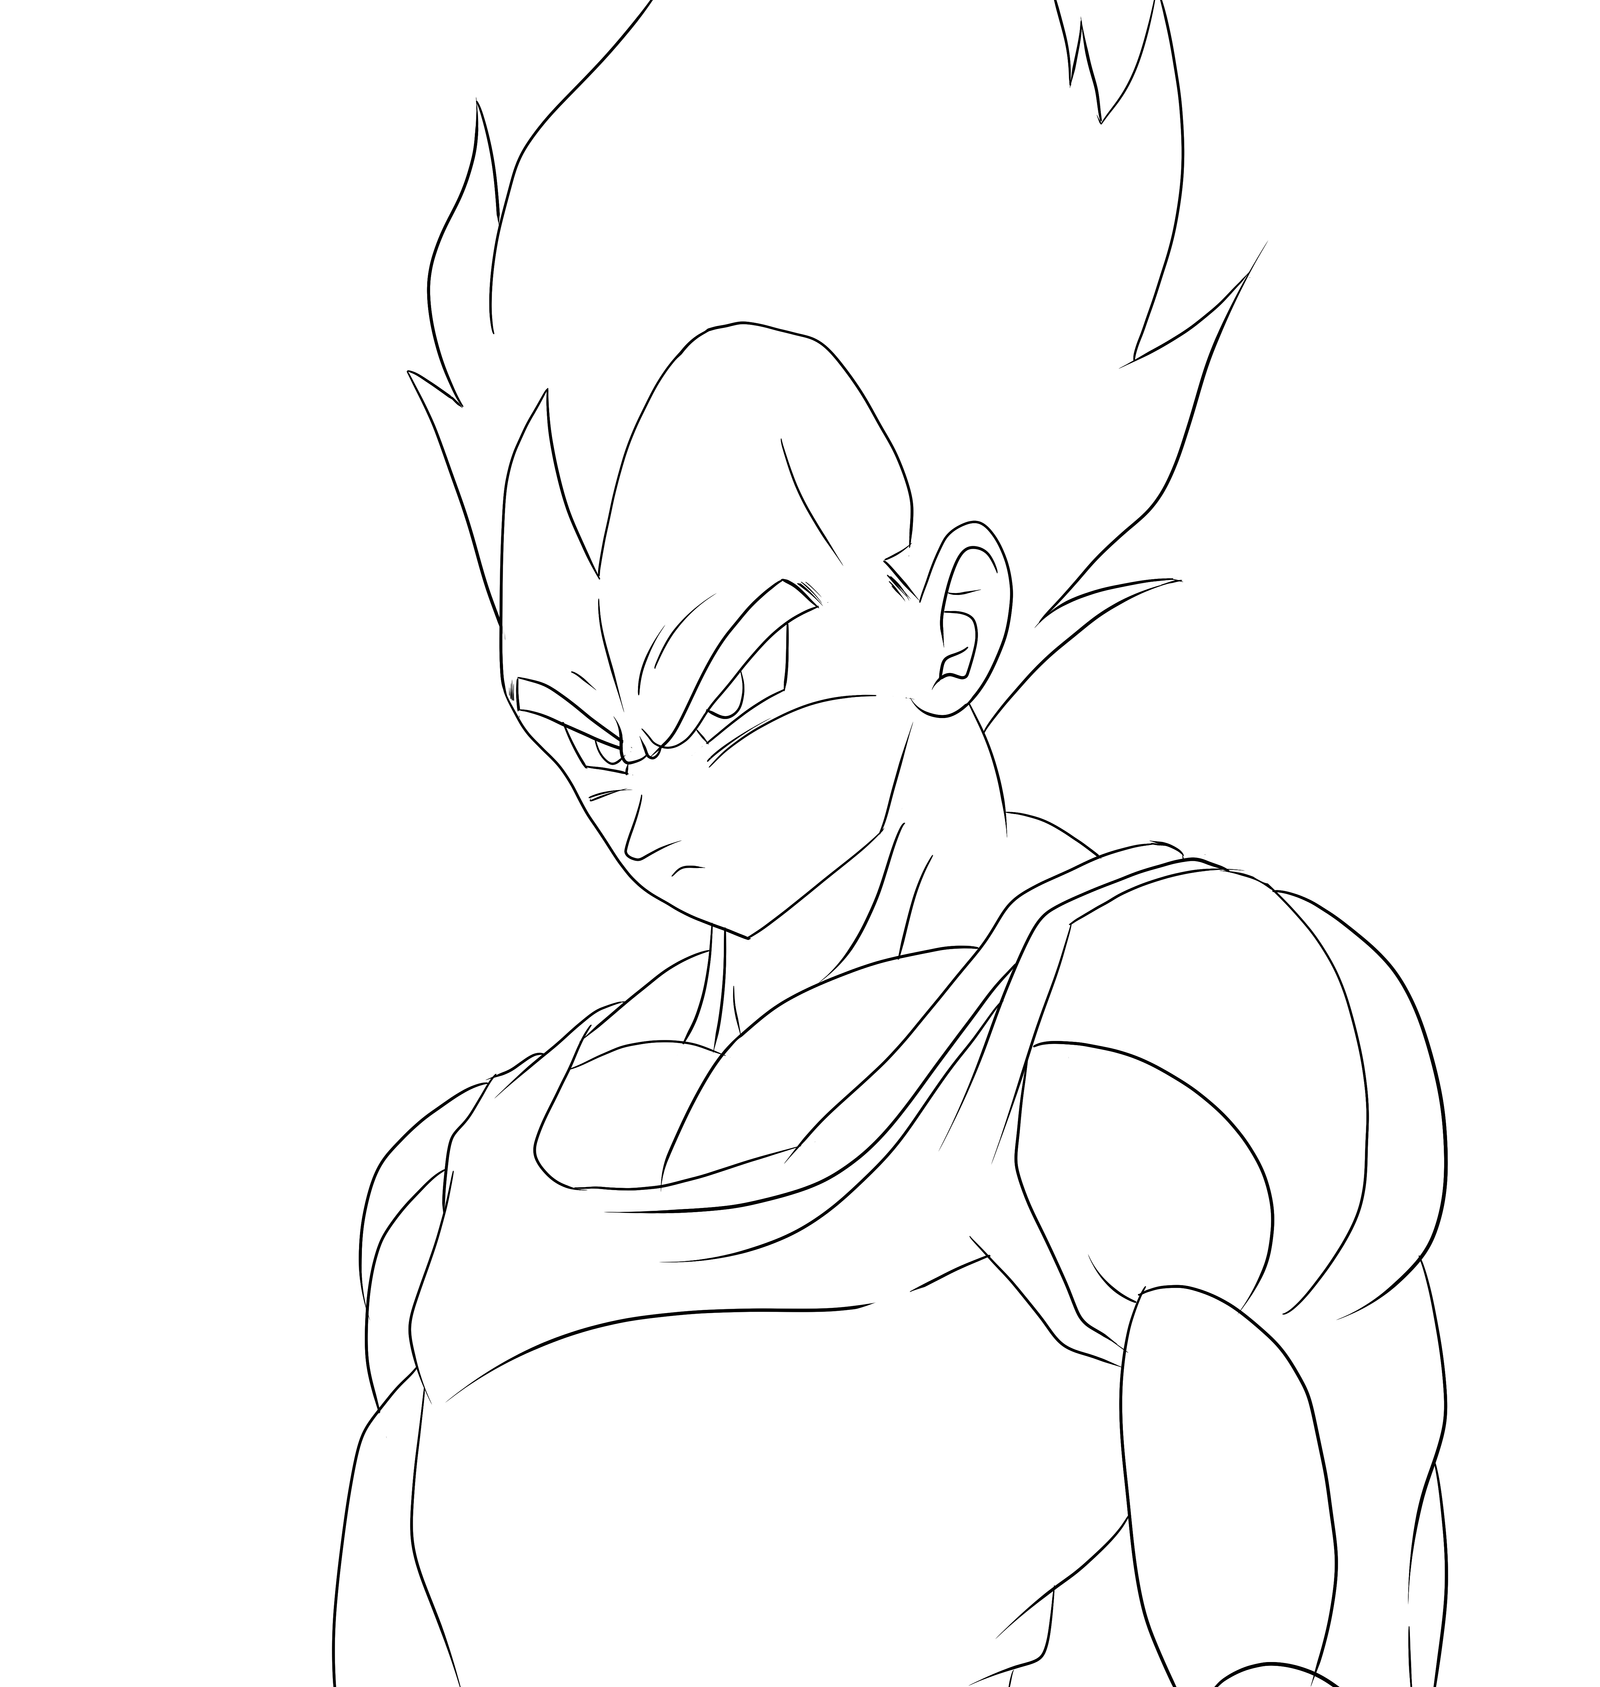 Vegeta line art by guysanx on deviantart for Vegeta coloring pages